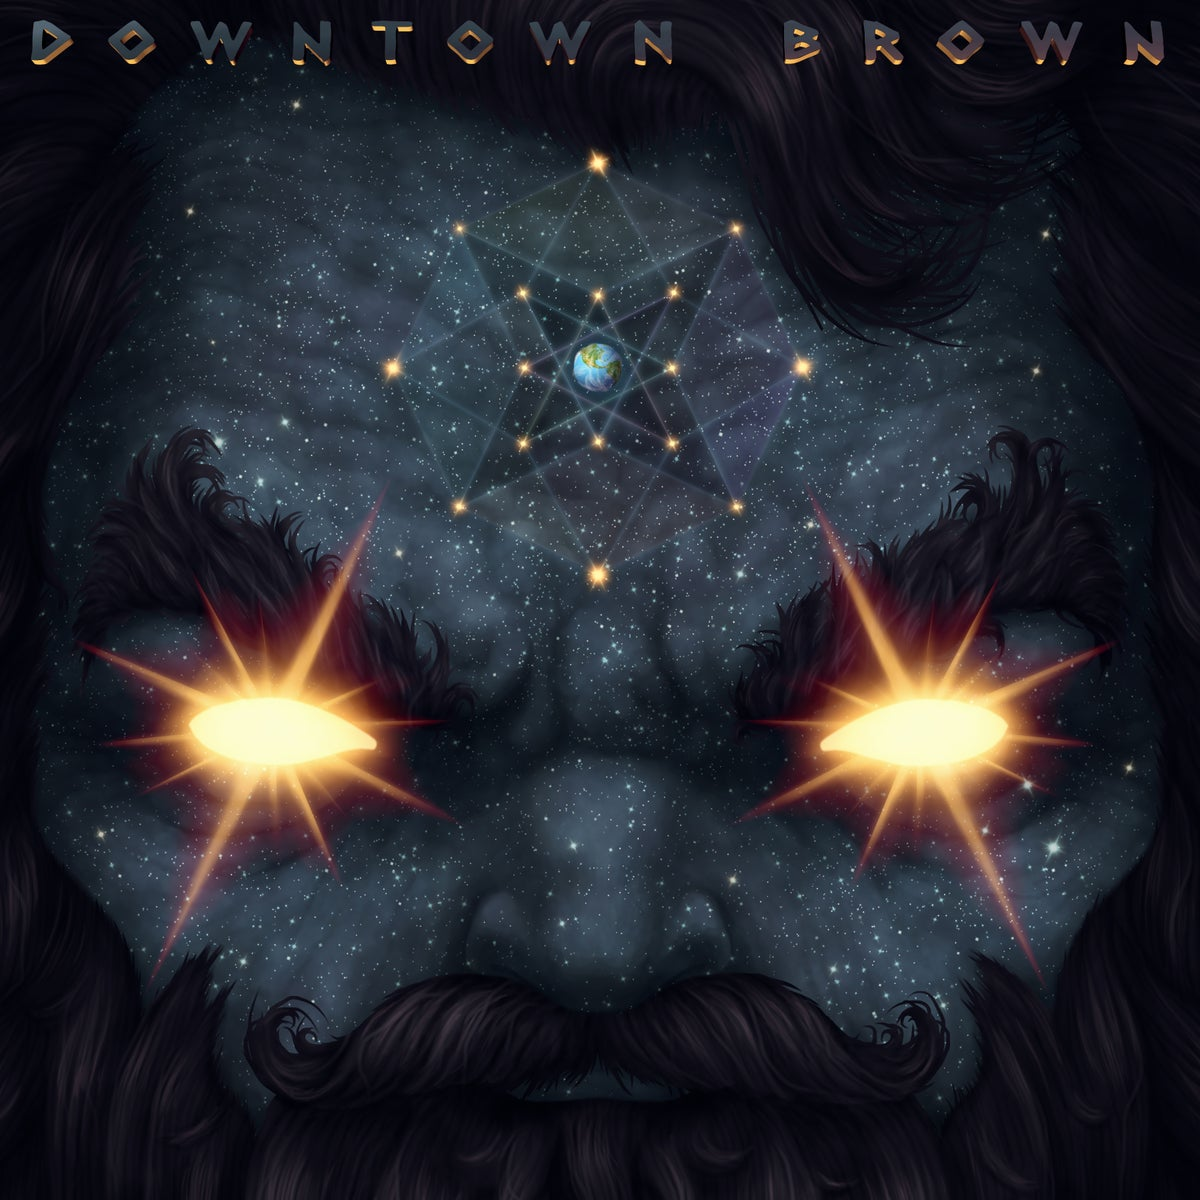 Image of Downtown Brown 'Masterz of the Universe' 12 inch Vinyl (2013)